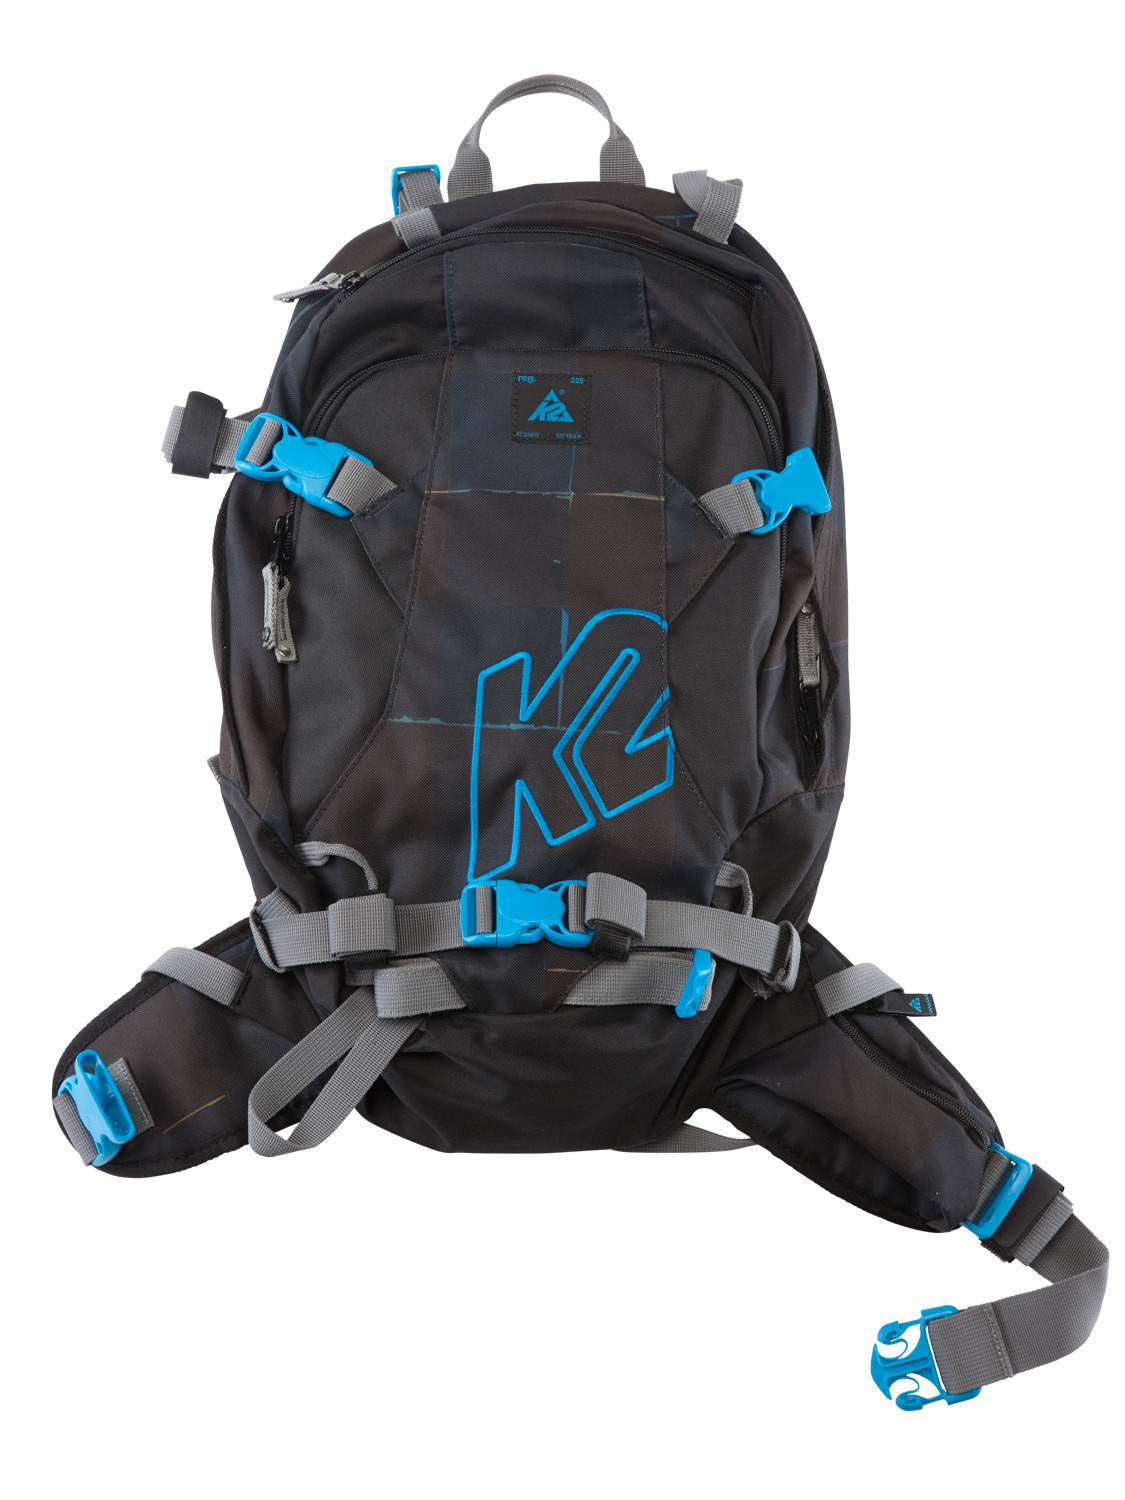 Snowboard The Hyak Pack is designed to carry your K2 shovel and probe, an extra pair of goggles, and any other important items needed on your adventure. This 15 liter pack is light, durable and packed with the features you need to explore in and outside of the resort. - $89.95